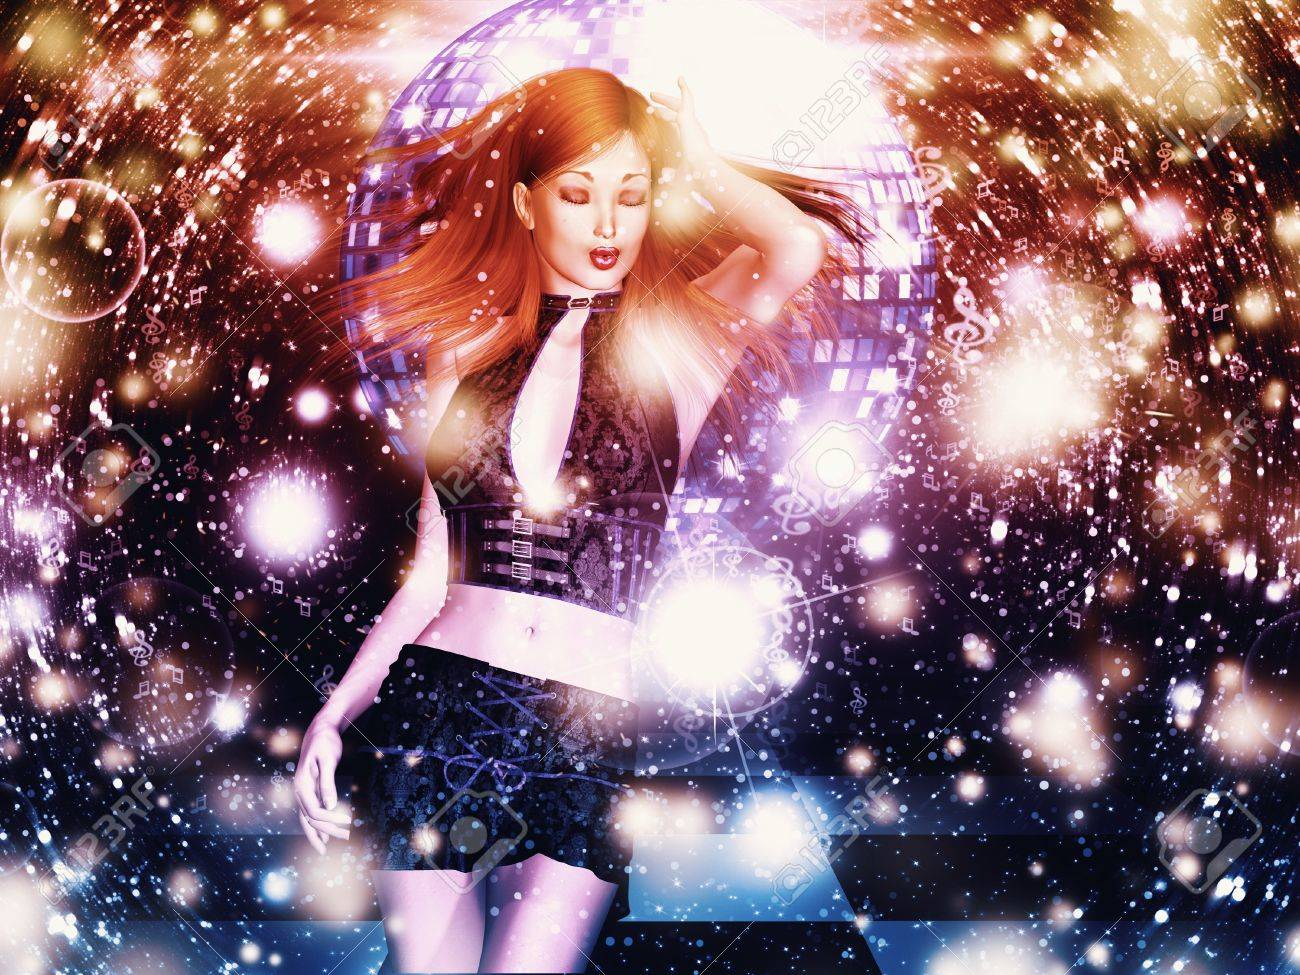 Illustration of 3d girl on dancing floor with disco ball background. Stock Illustration - 17476352